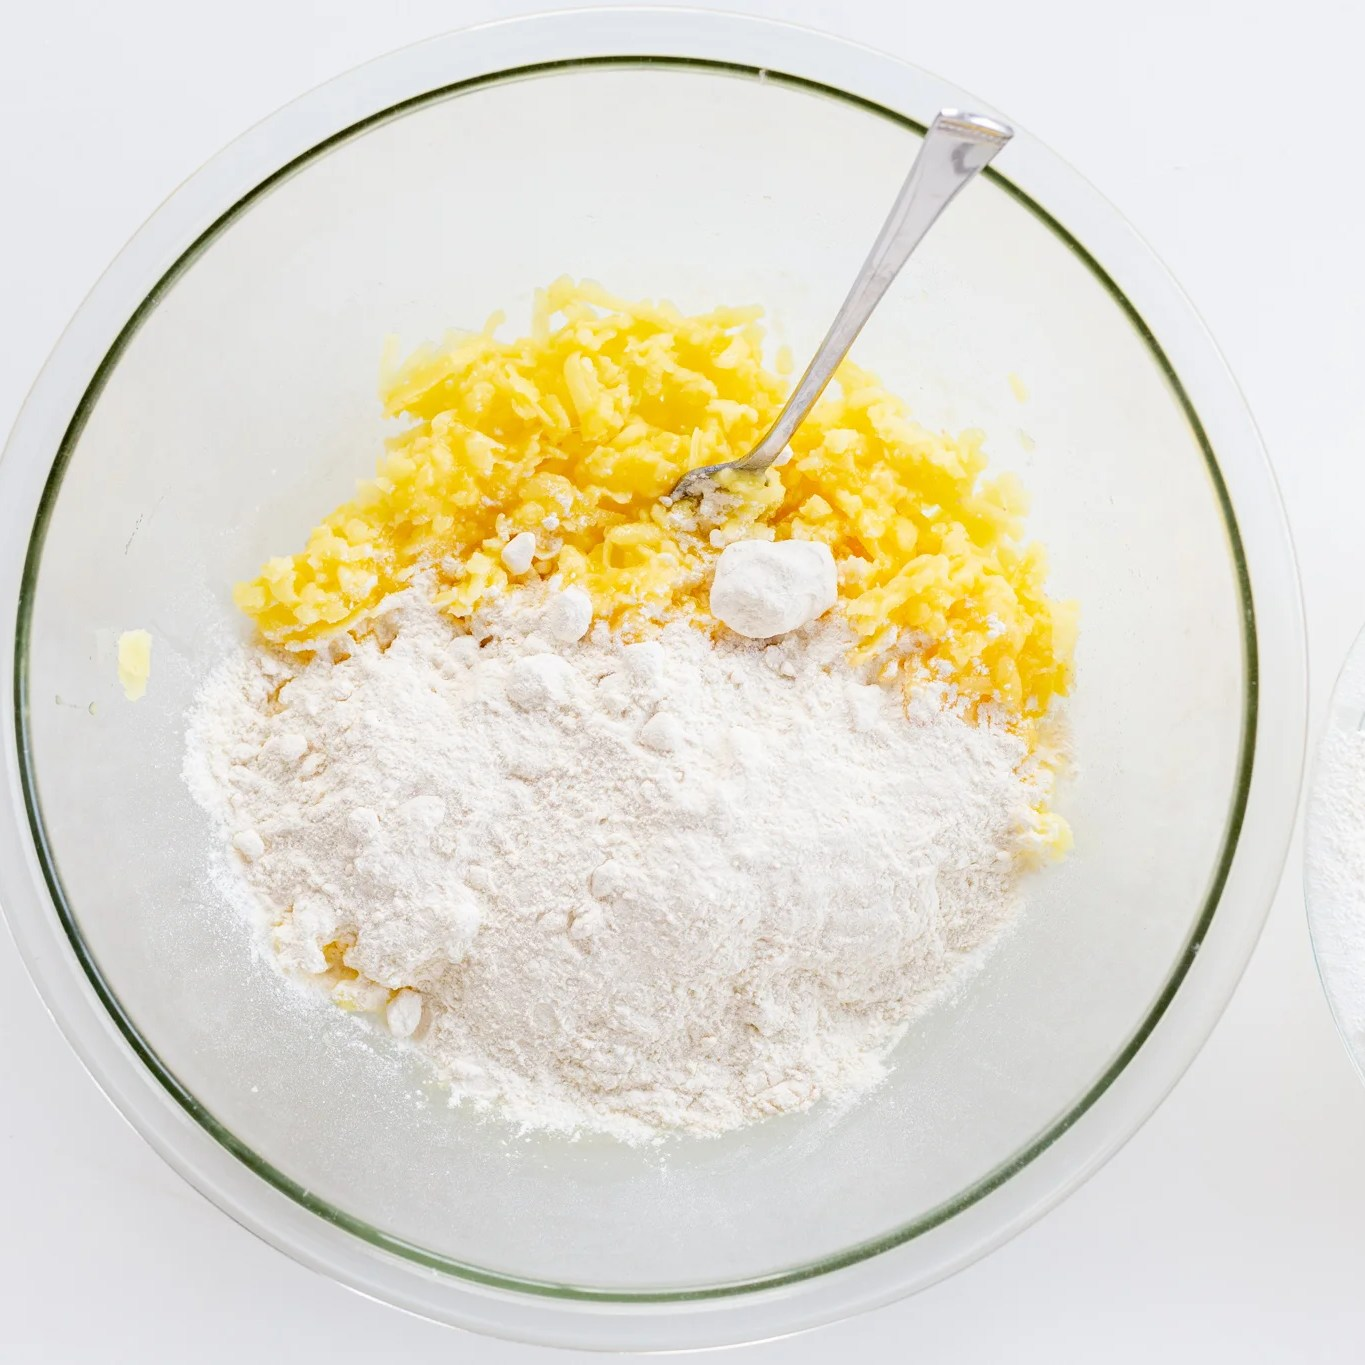 Flour added to potatoes in a bowl